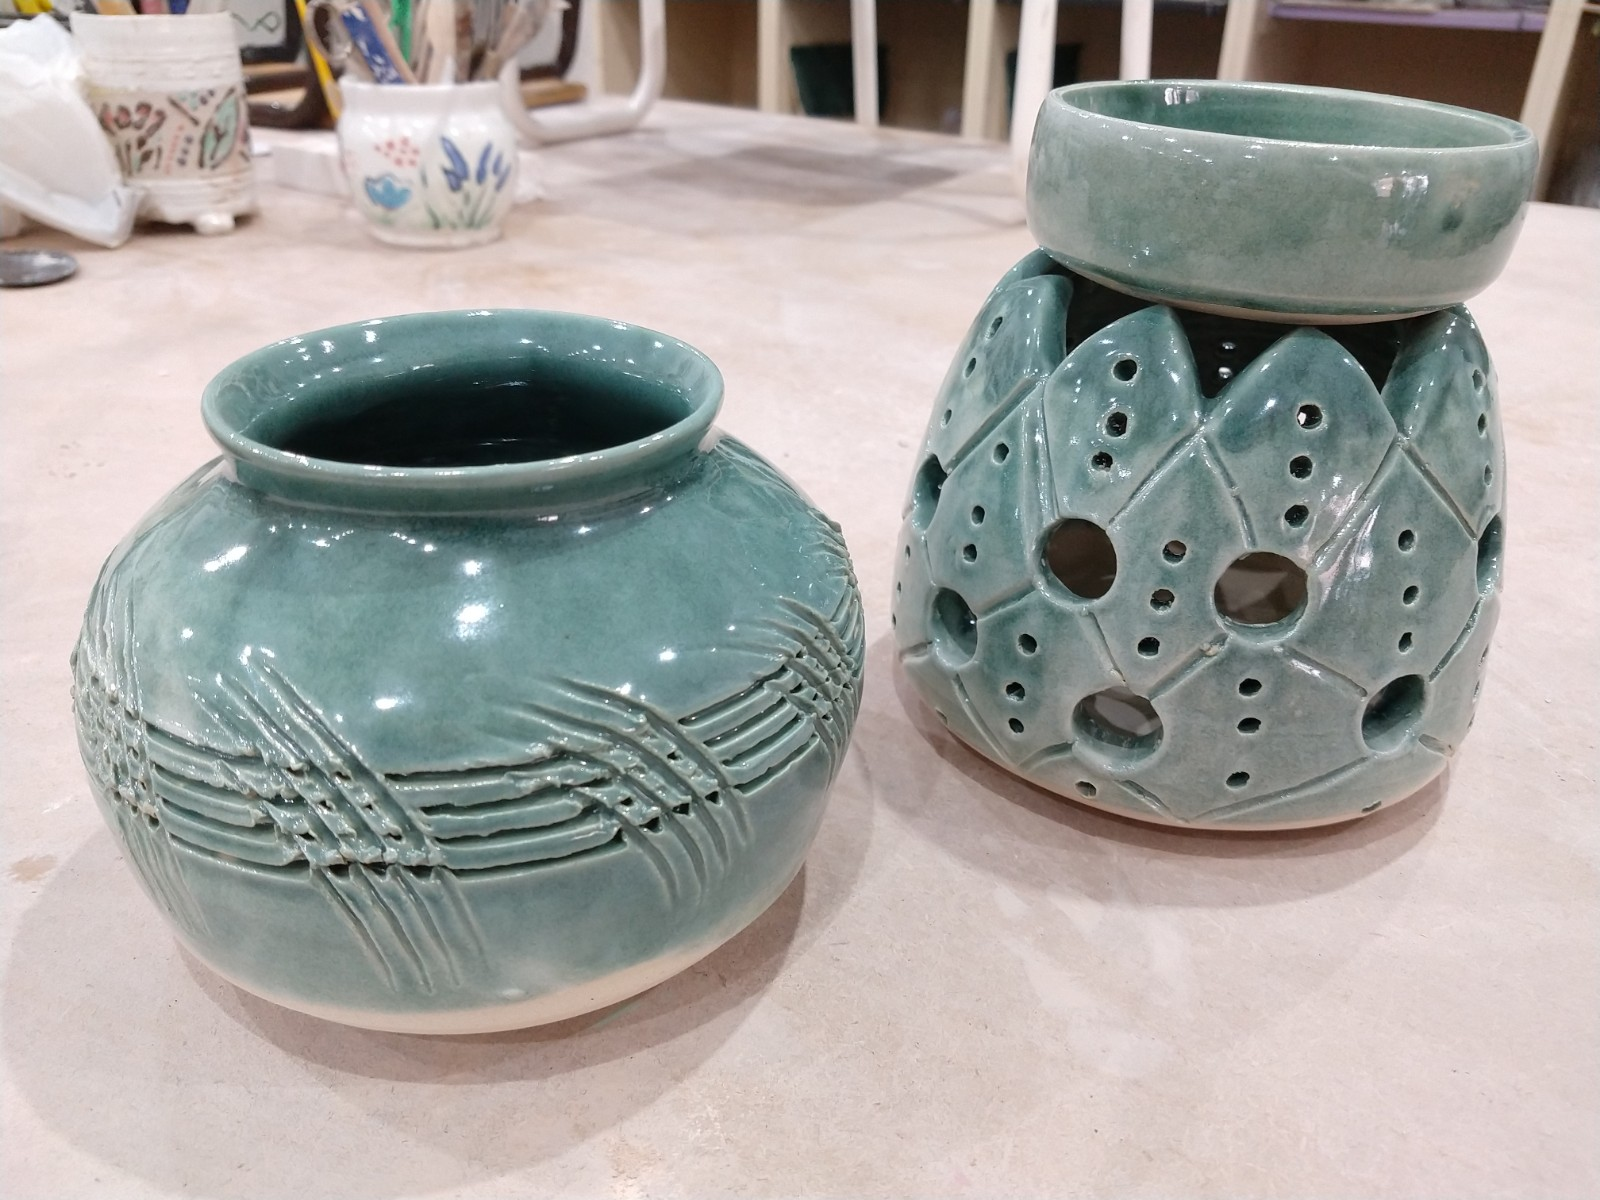 Patterned vessels